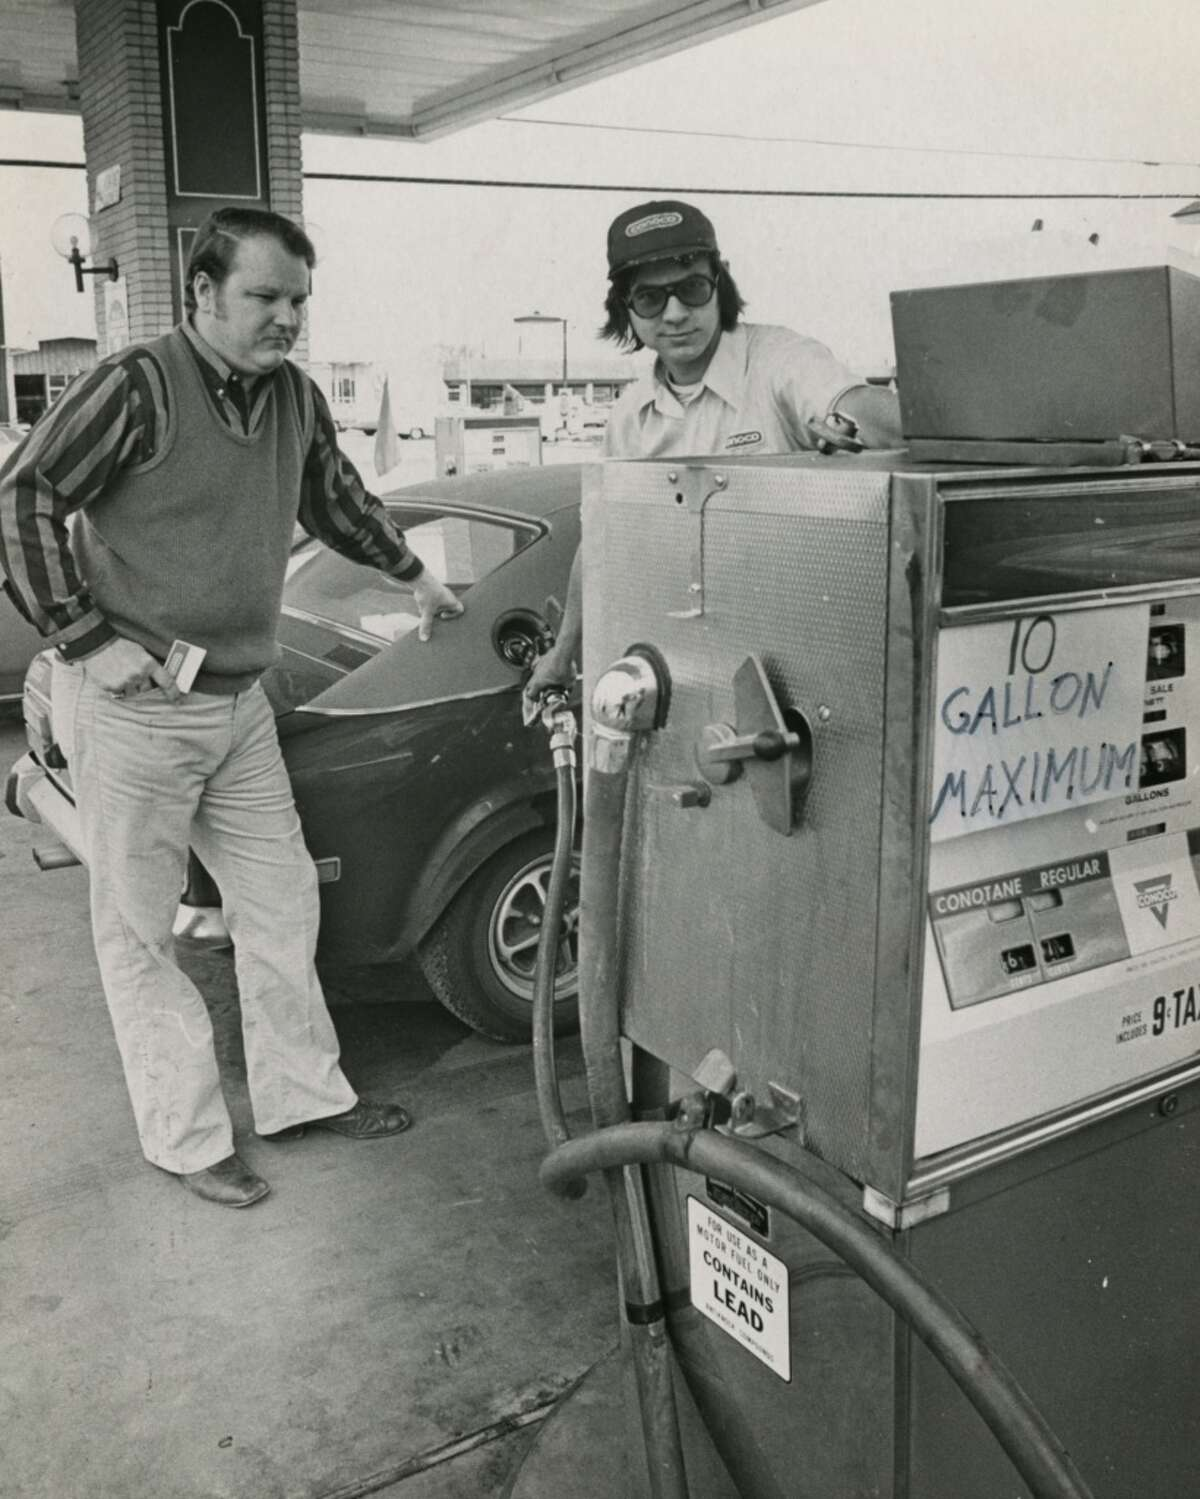 On Dec. 21, 1973, John O. Pickett (left) waits while attendant Ron West pumps gas into Pickett's car at the Westchester Conoco station on Memorial Drive at Dairy Ashford Street in Houston. The station limited sales over the holiday weekend to 10 gallons per customer while most Texas stations closed.